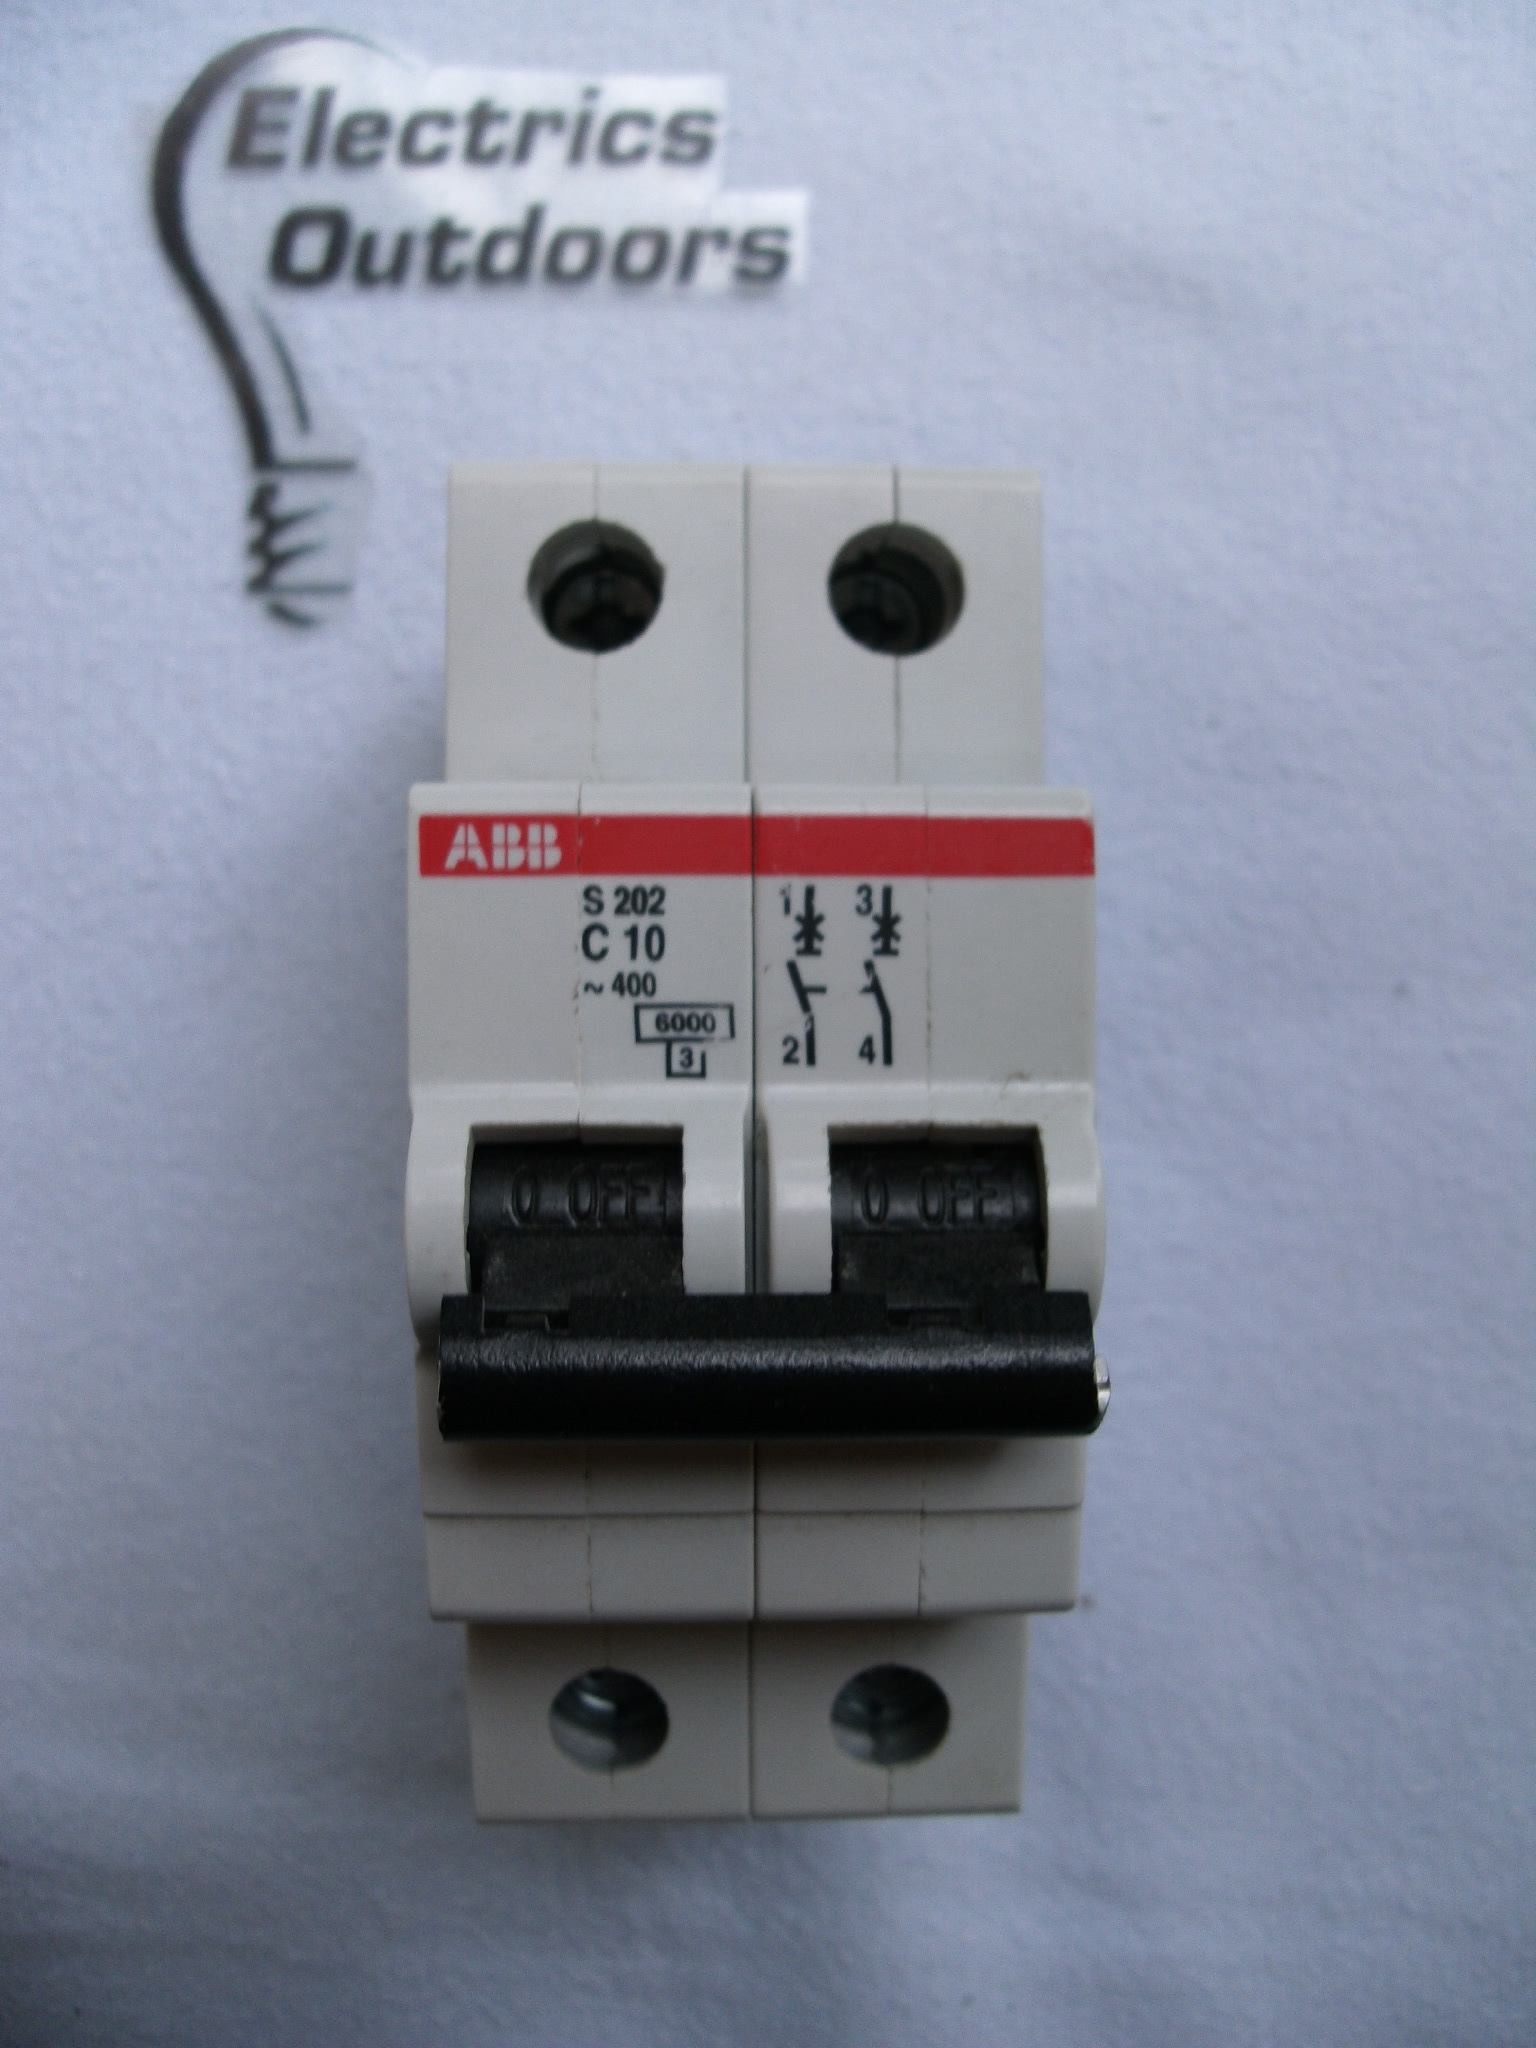 ABB 10 AMP TYPE C 6 kA DOUBLE 2 POLE MCB CIRCUIT BREAKER 230/400